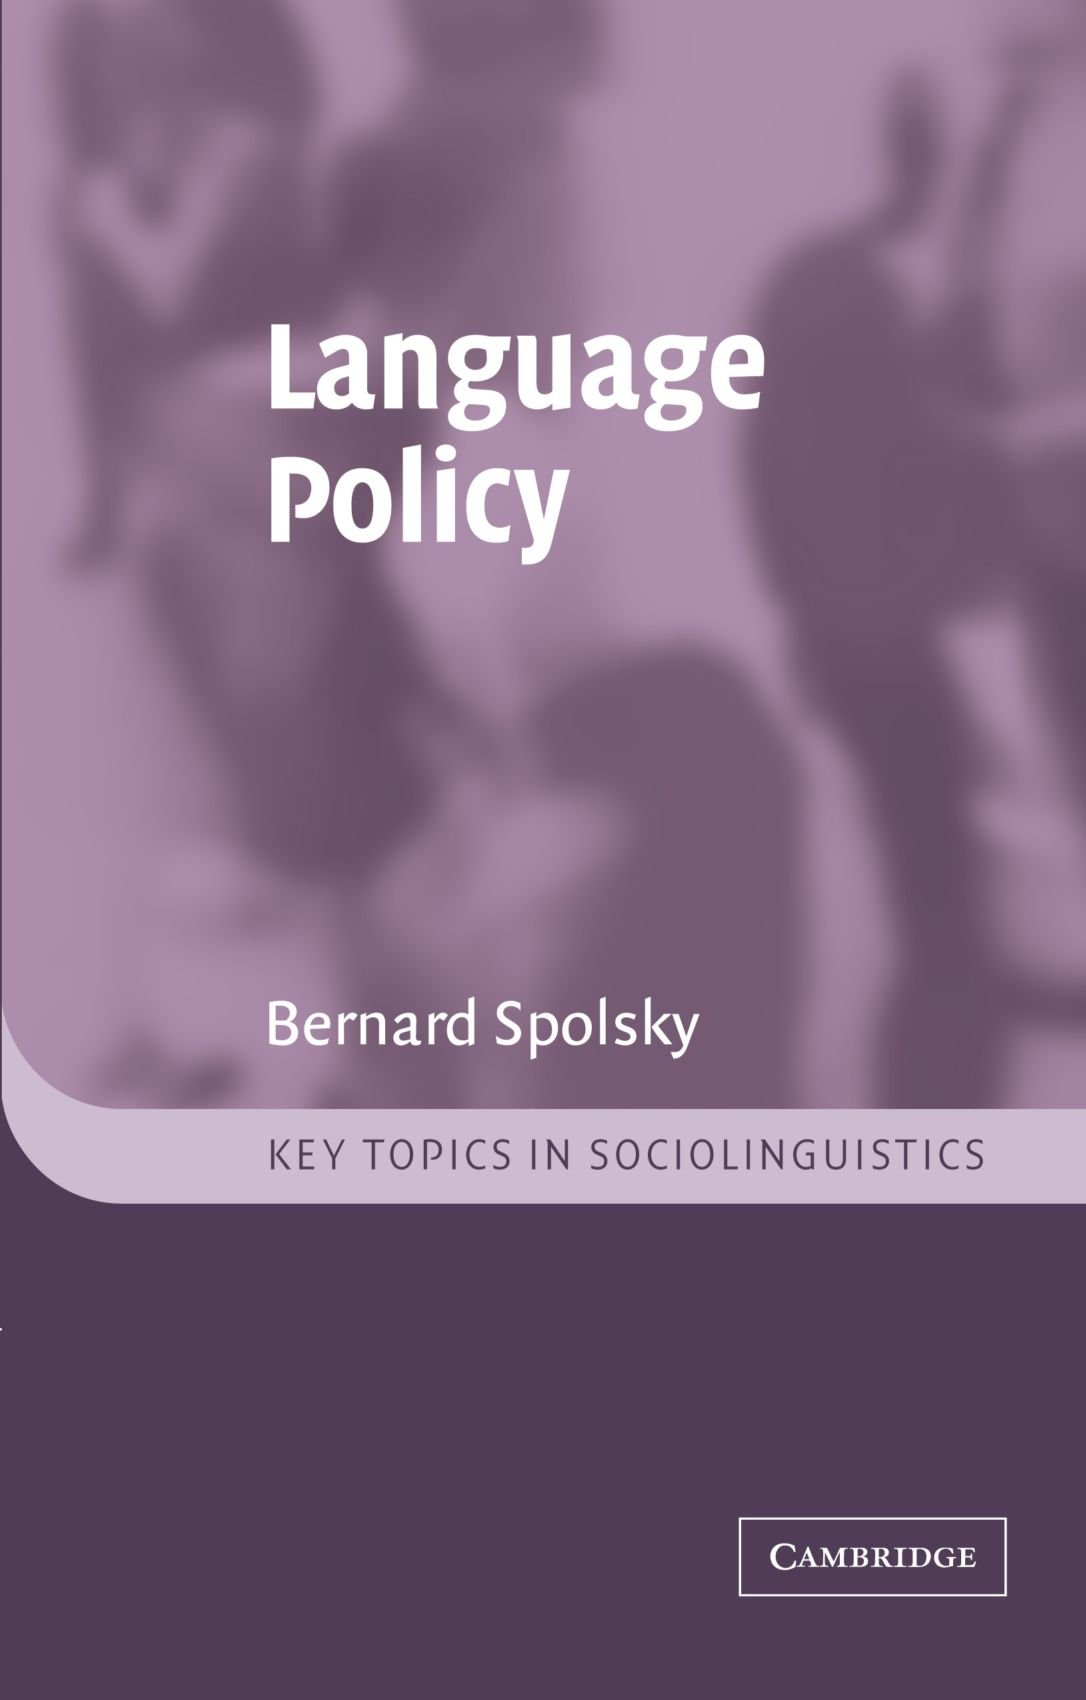 Language Policy (Key Topics in Sociolinguistics) by Cambridge University Press